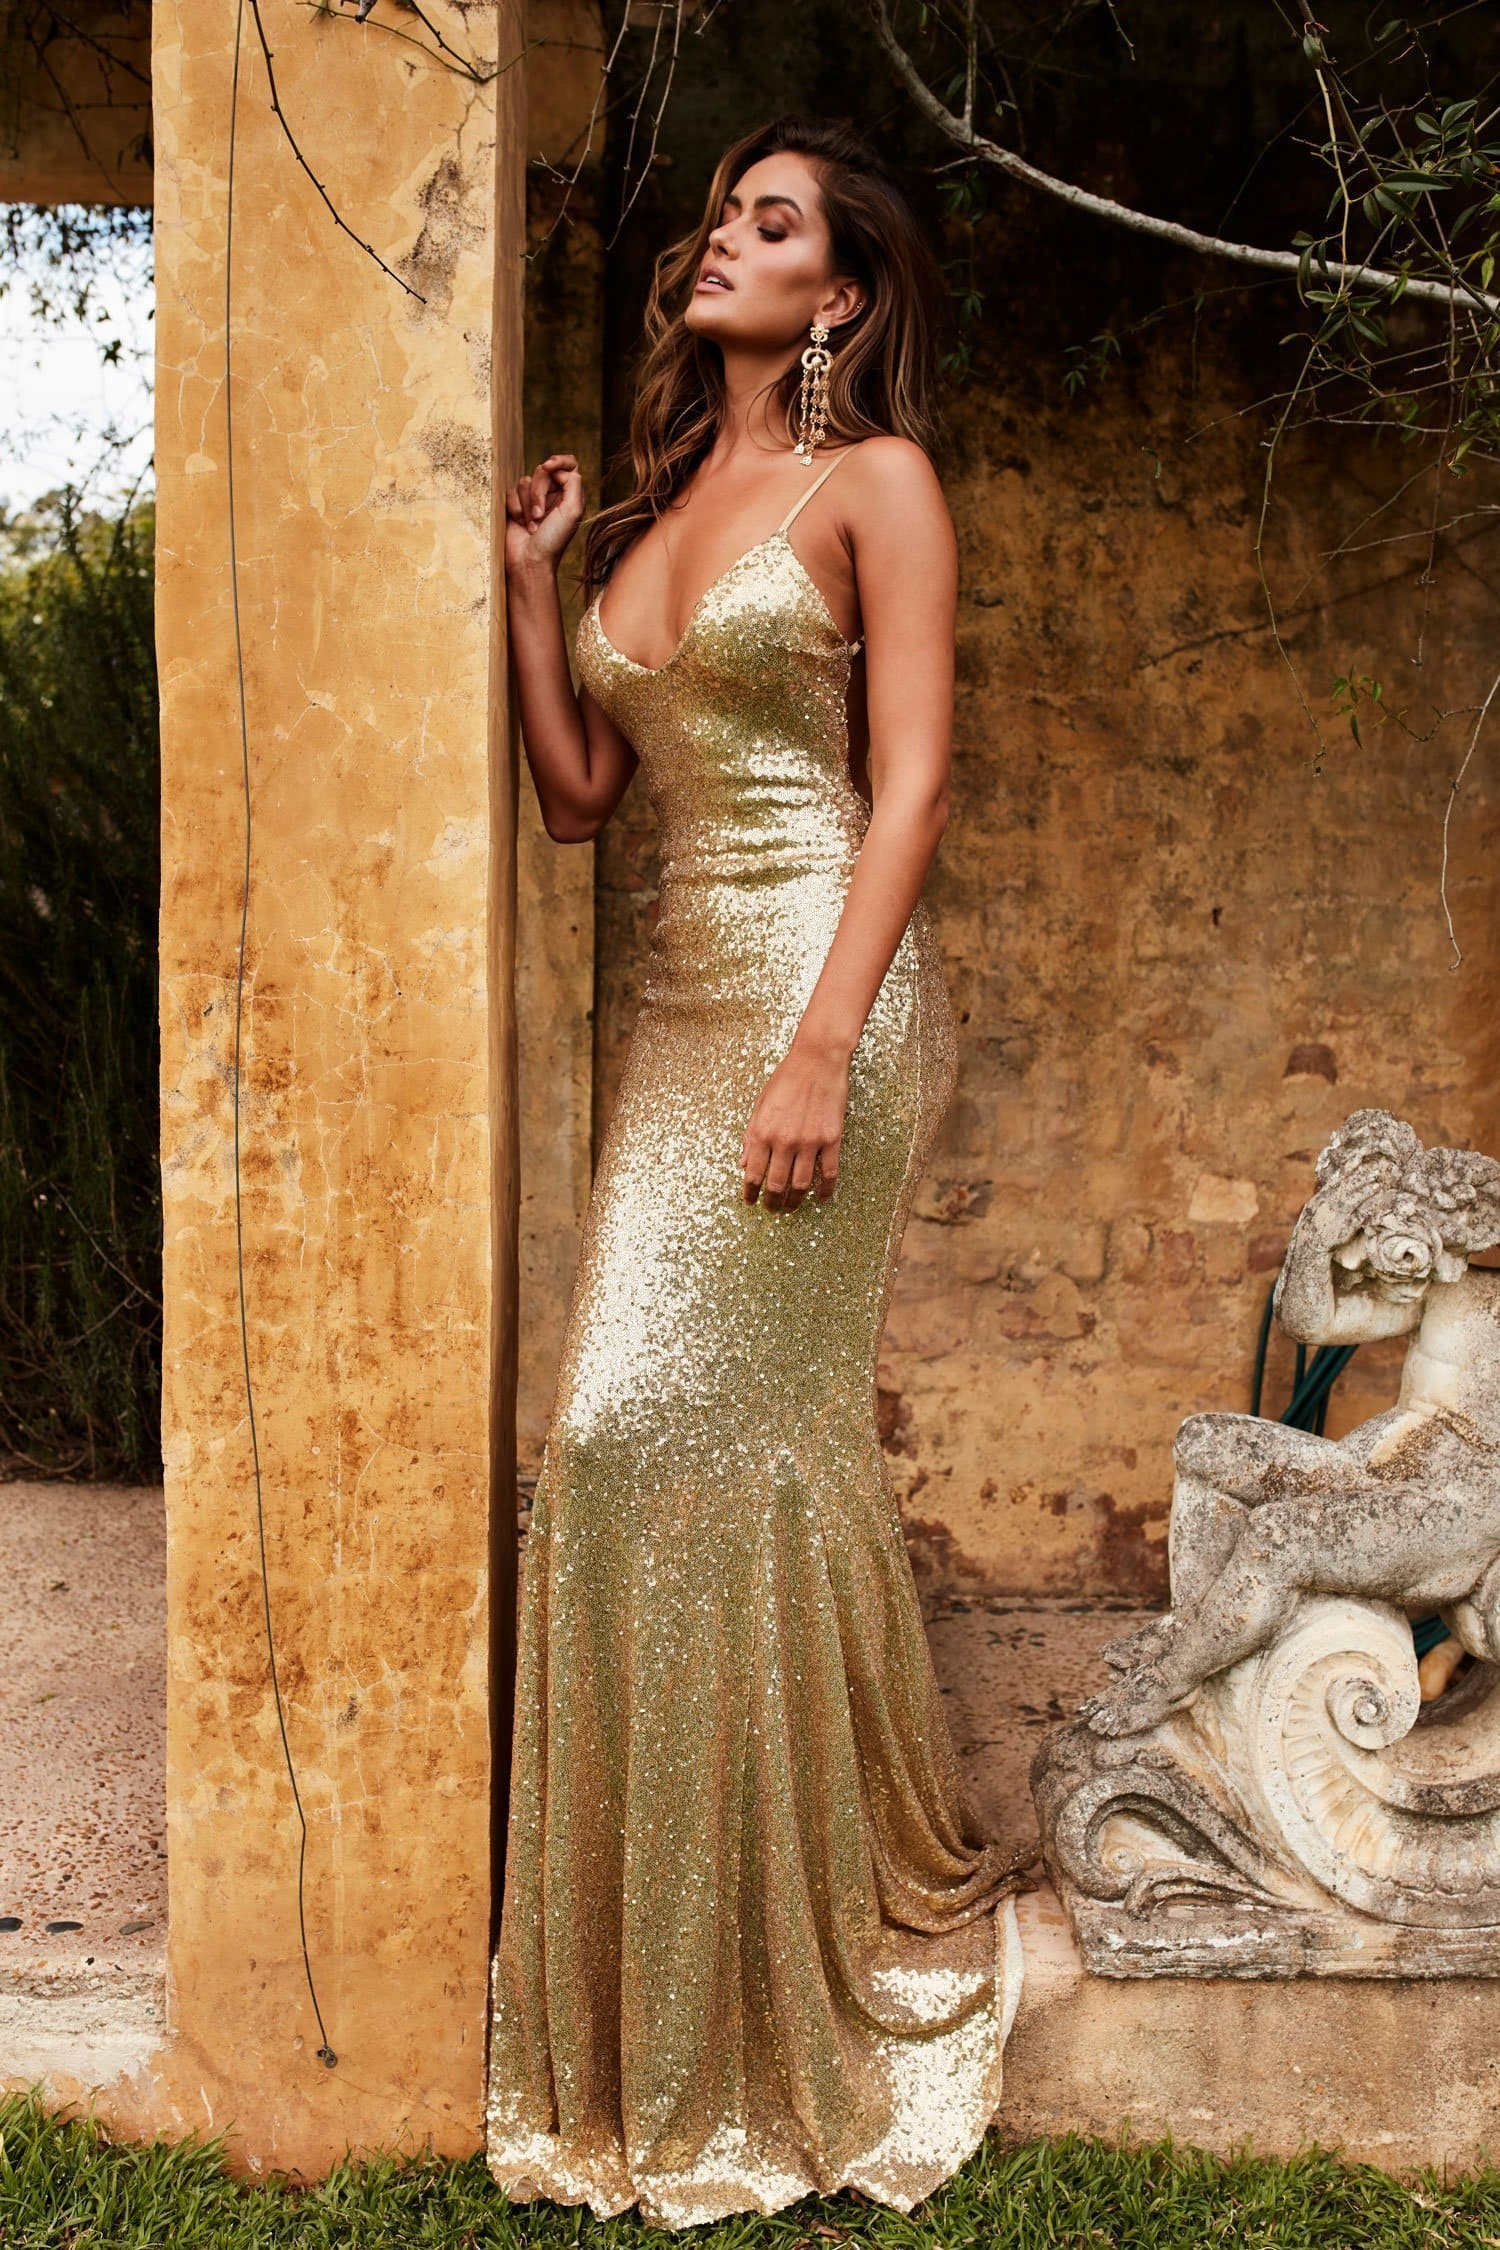 Yassmine Luxe - Gold Backless Sequin Gown with Long Mermaid Train